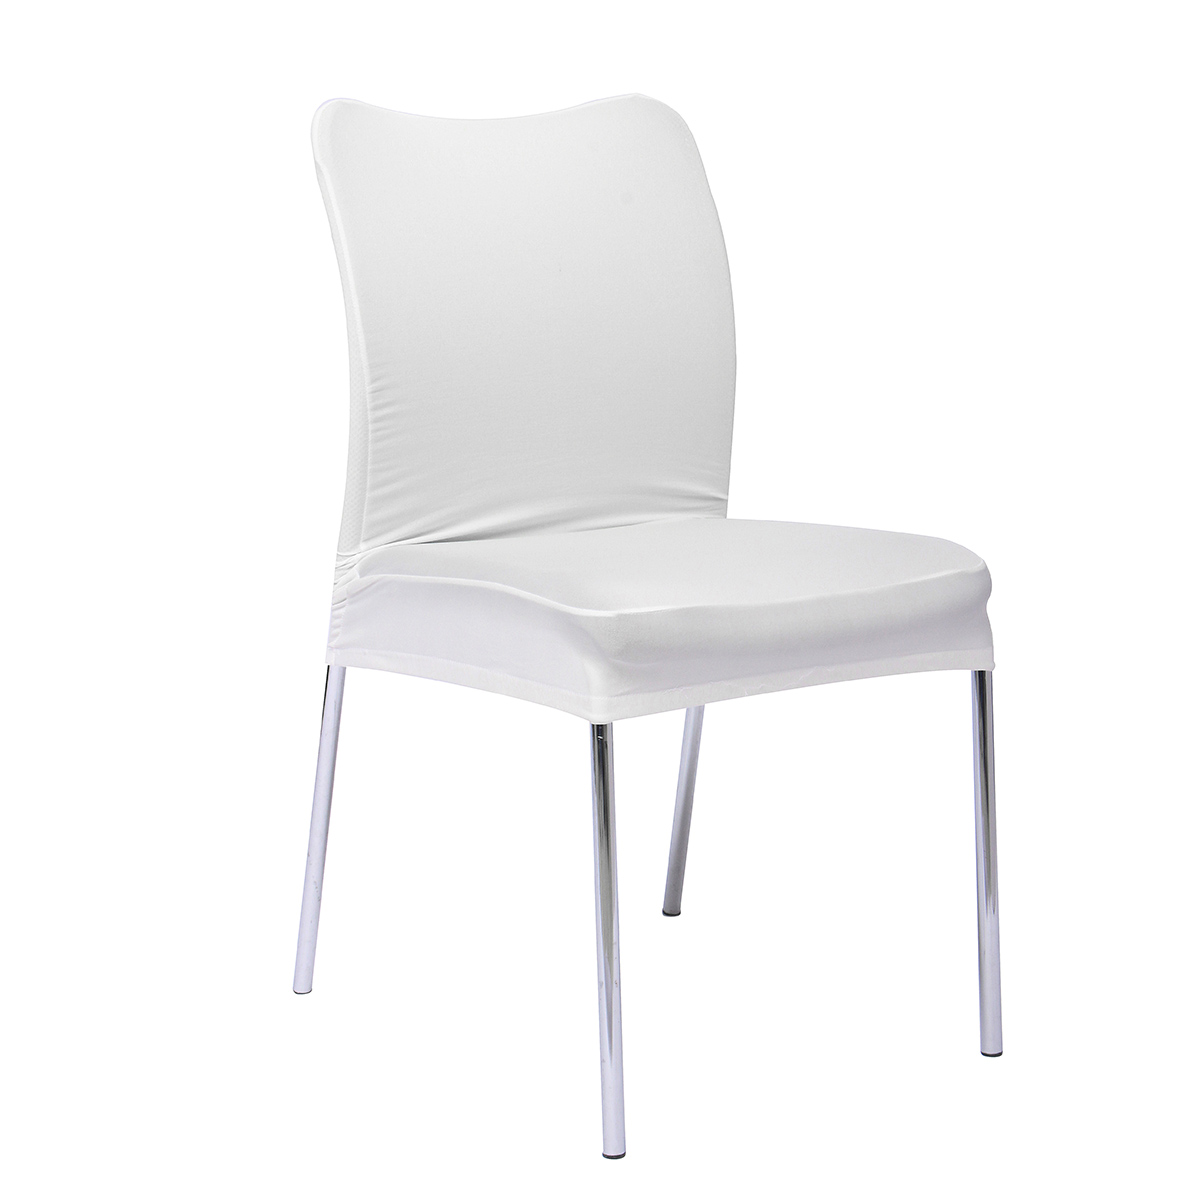 stool seat chair cover removable dining room hotel protector decor